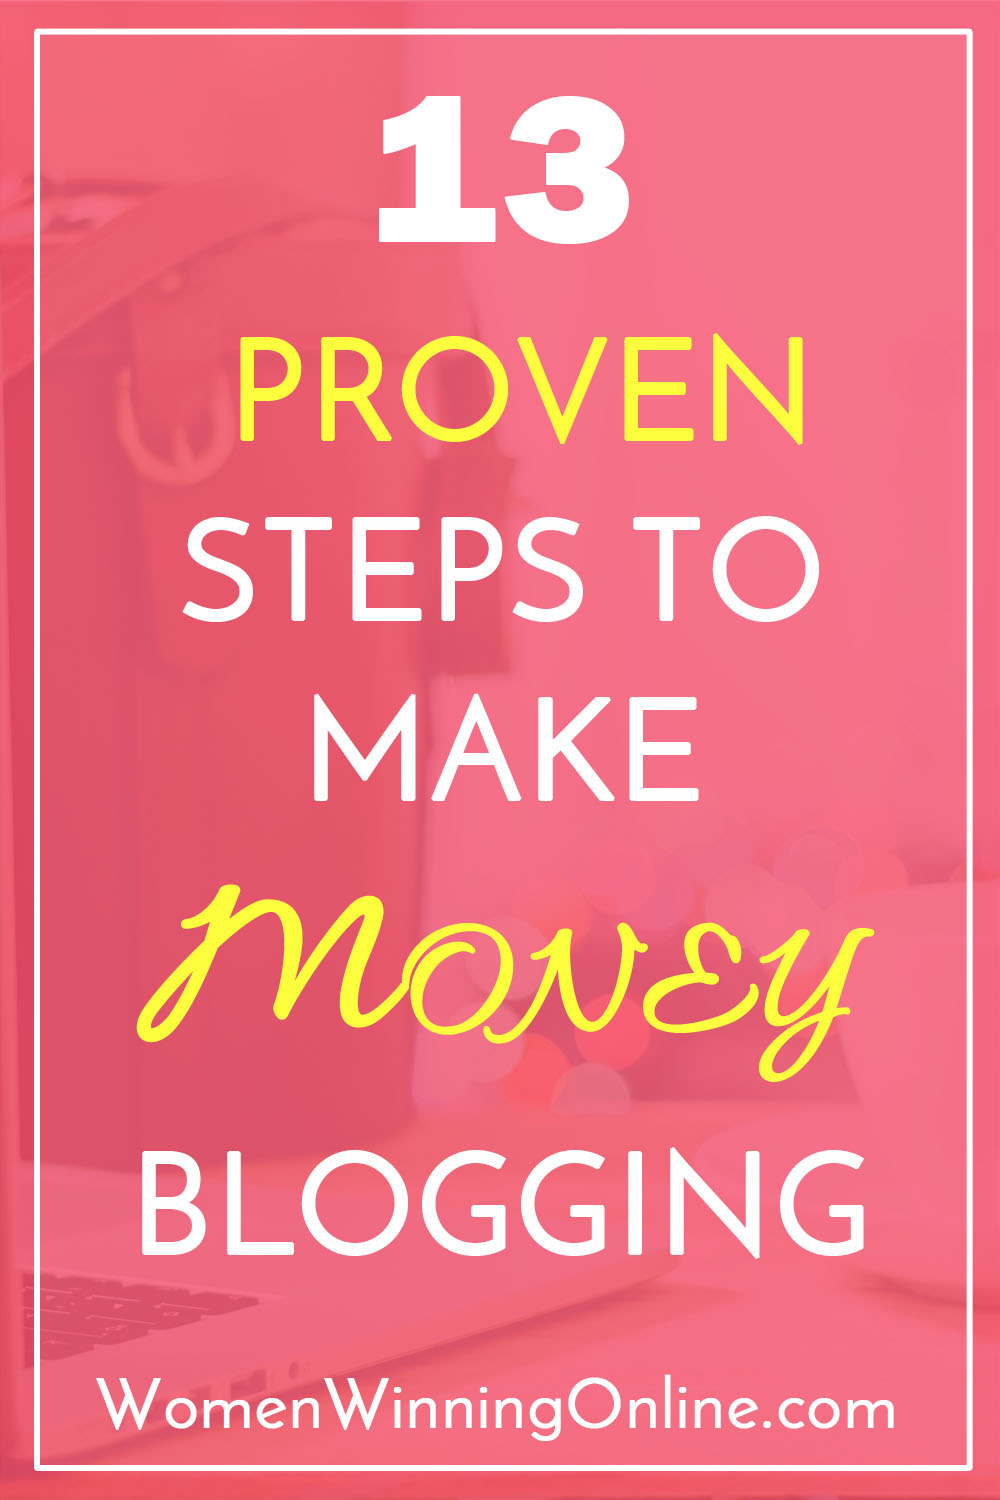 13 Proven Steps to Make Money Blogging